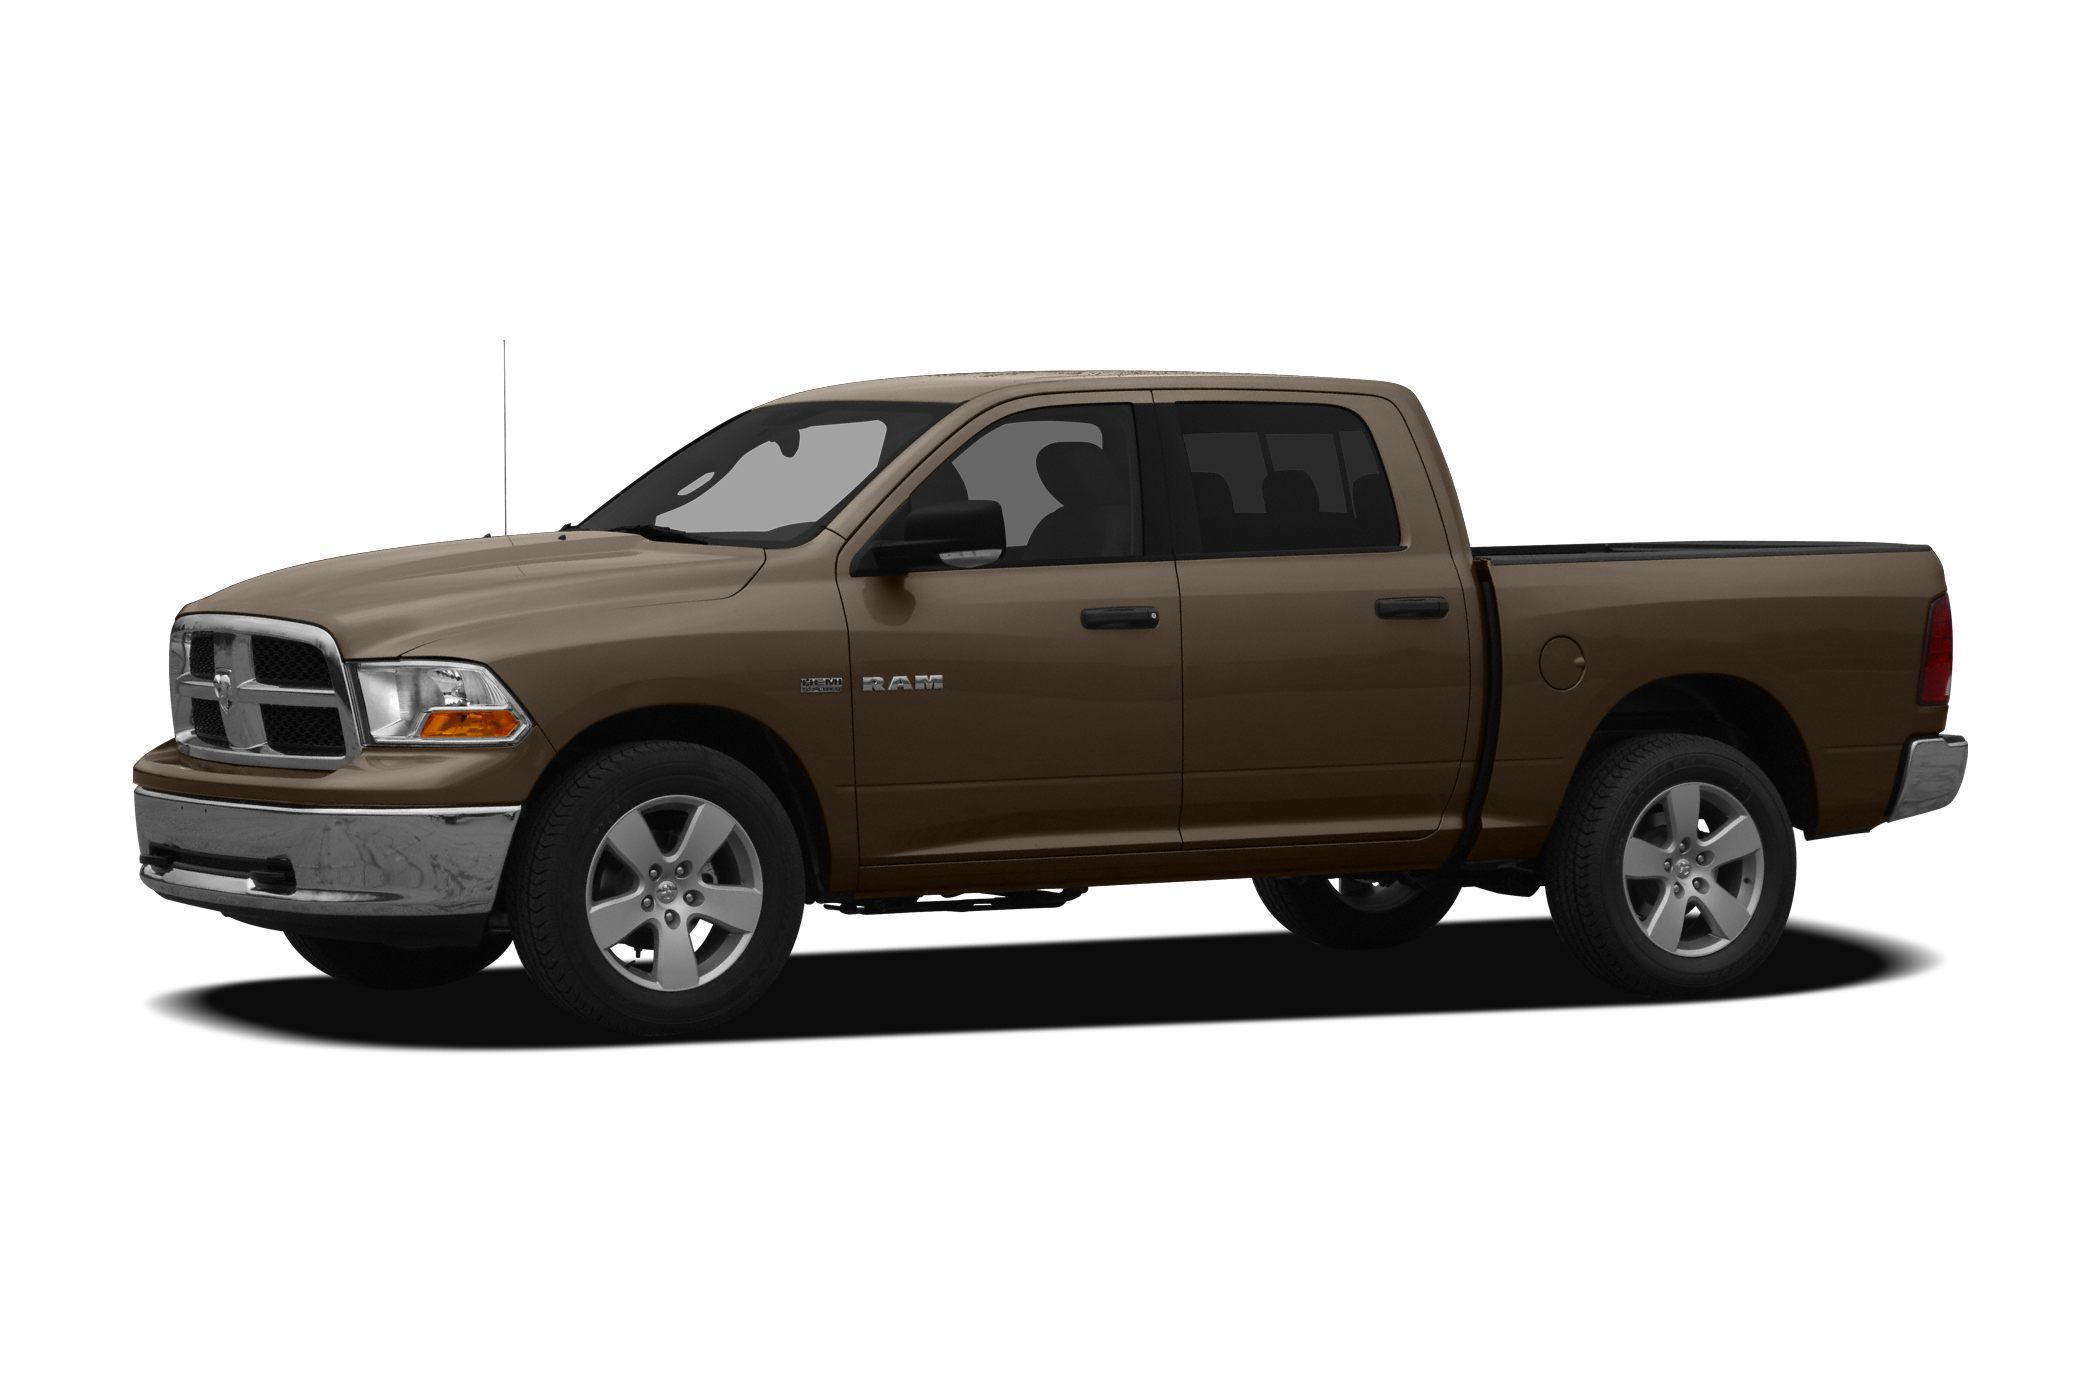 2010 Dodge Ram 1500  Auto Check 1 Owner CUSTOM 24 WHEELS and YA ITS GOT A HEMI Ram 1500 Big H